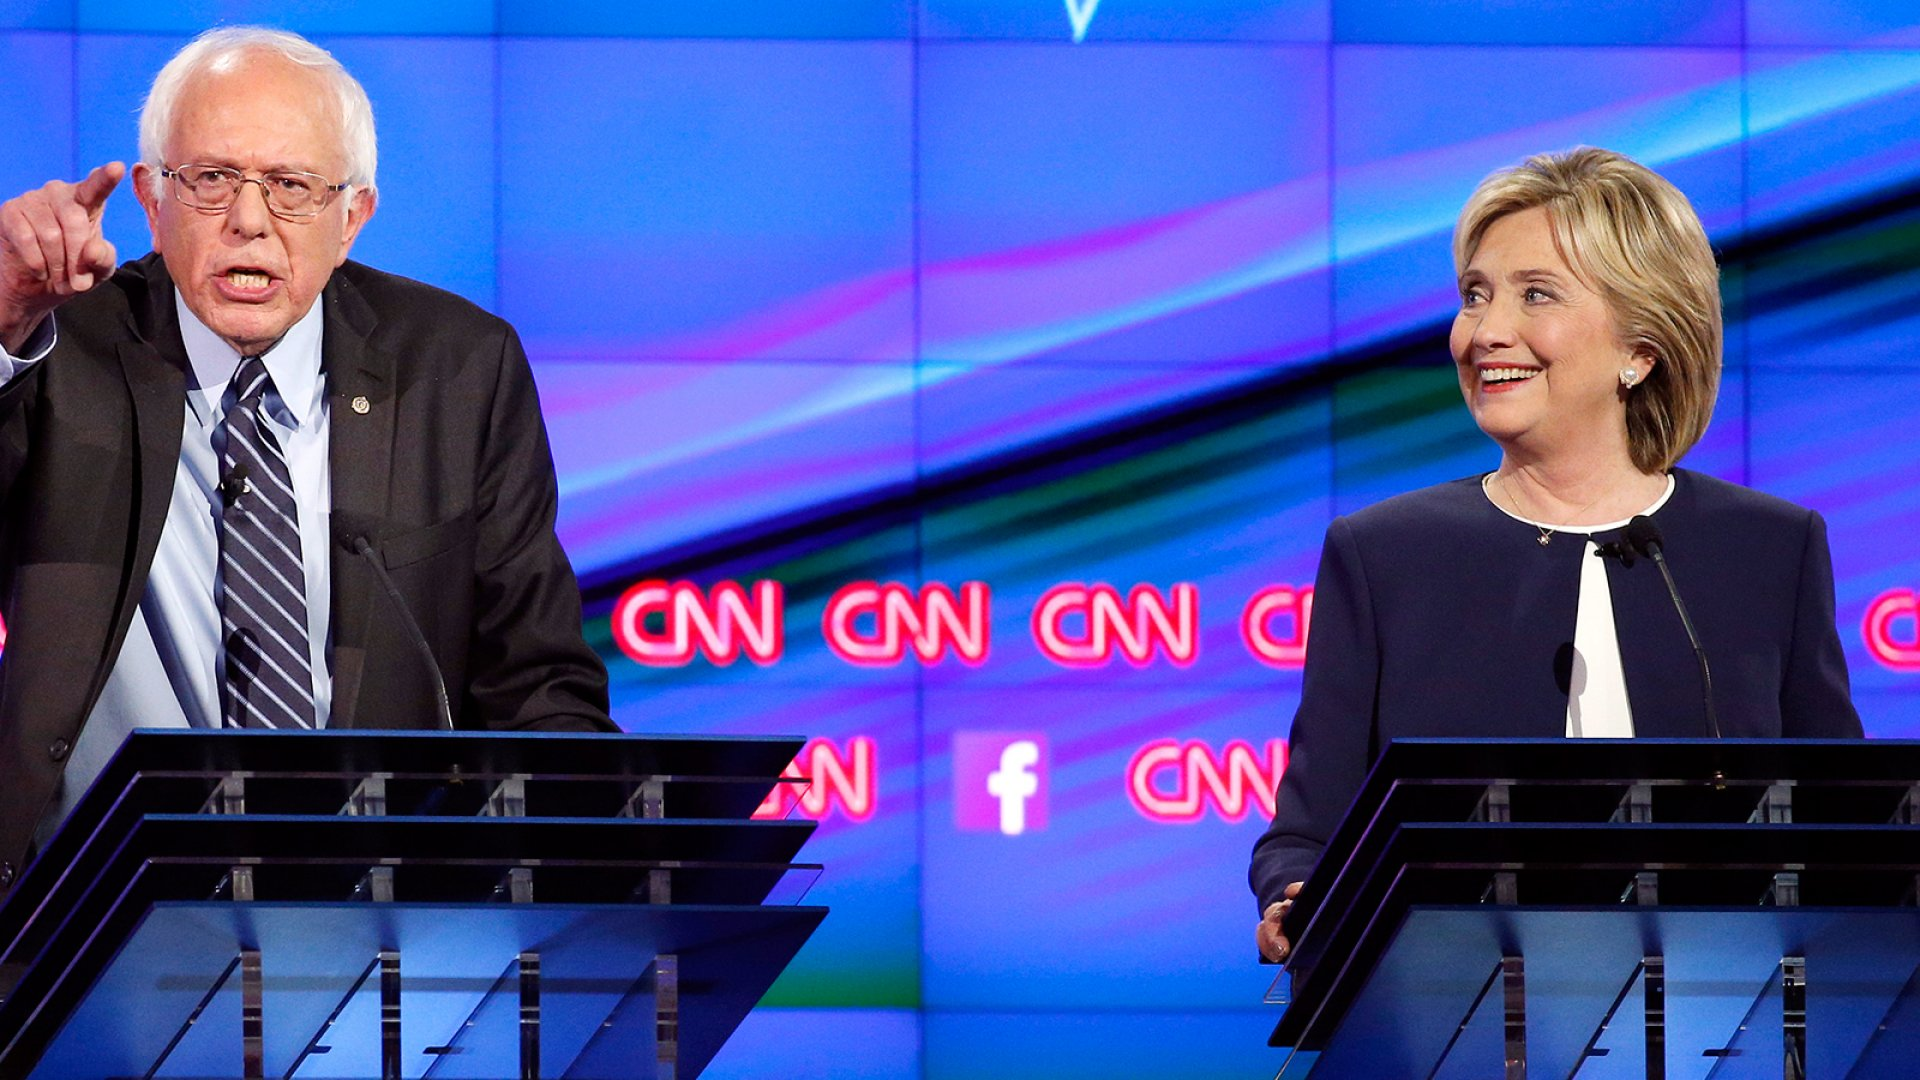 4 Big Takeaways From the First Democratic Debate